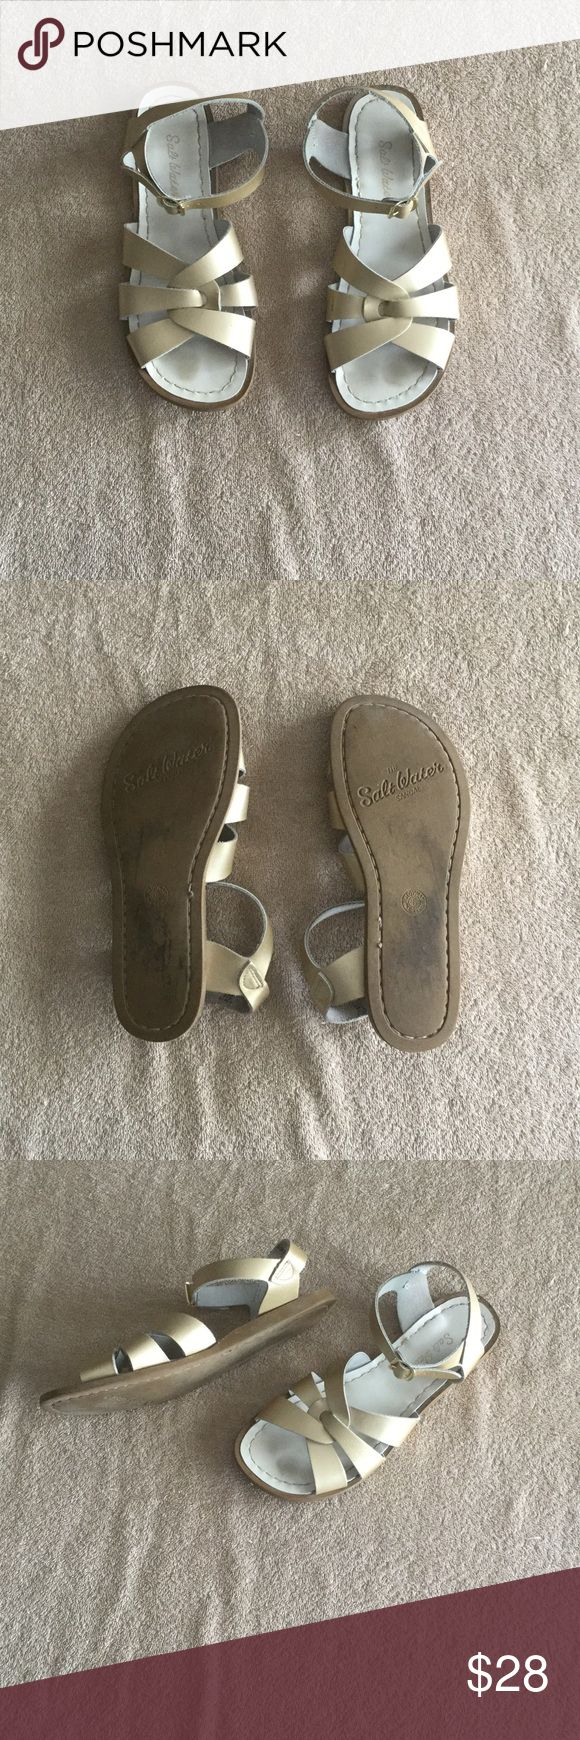 Salt Waters Sandal Excellent condition. Make an offer and no trade Salt Water Sandals by Hoy Shoes Sandals